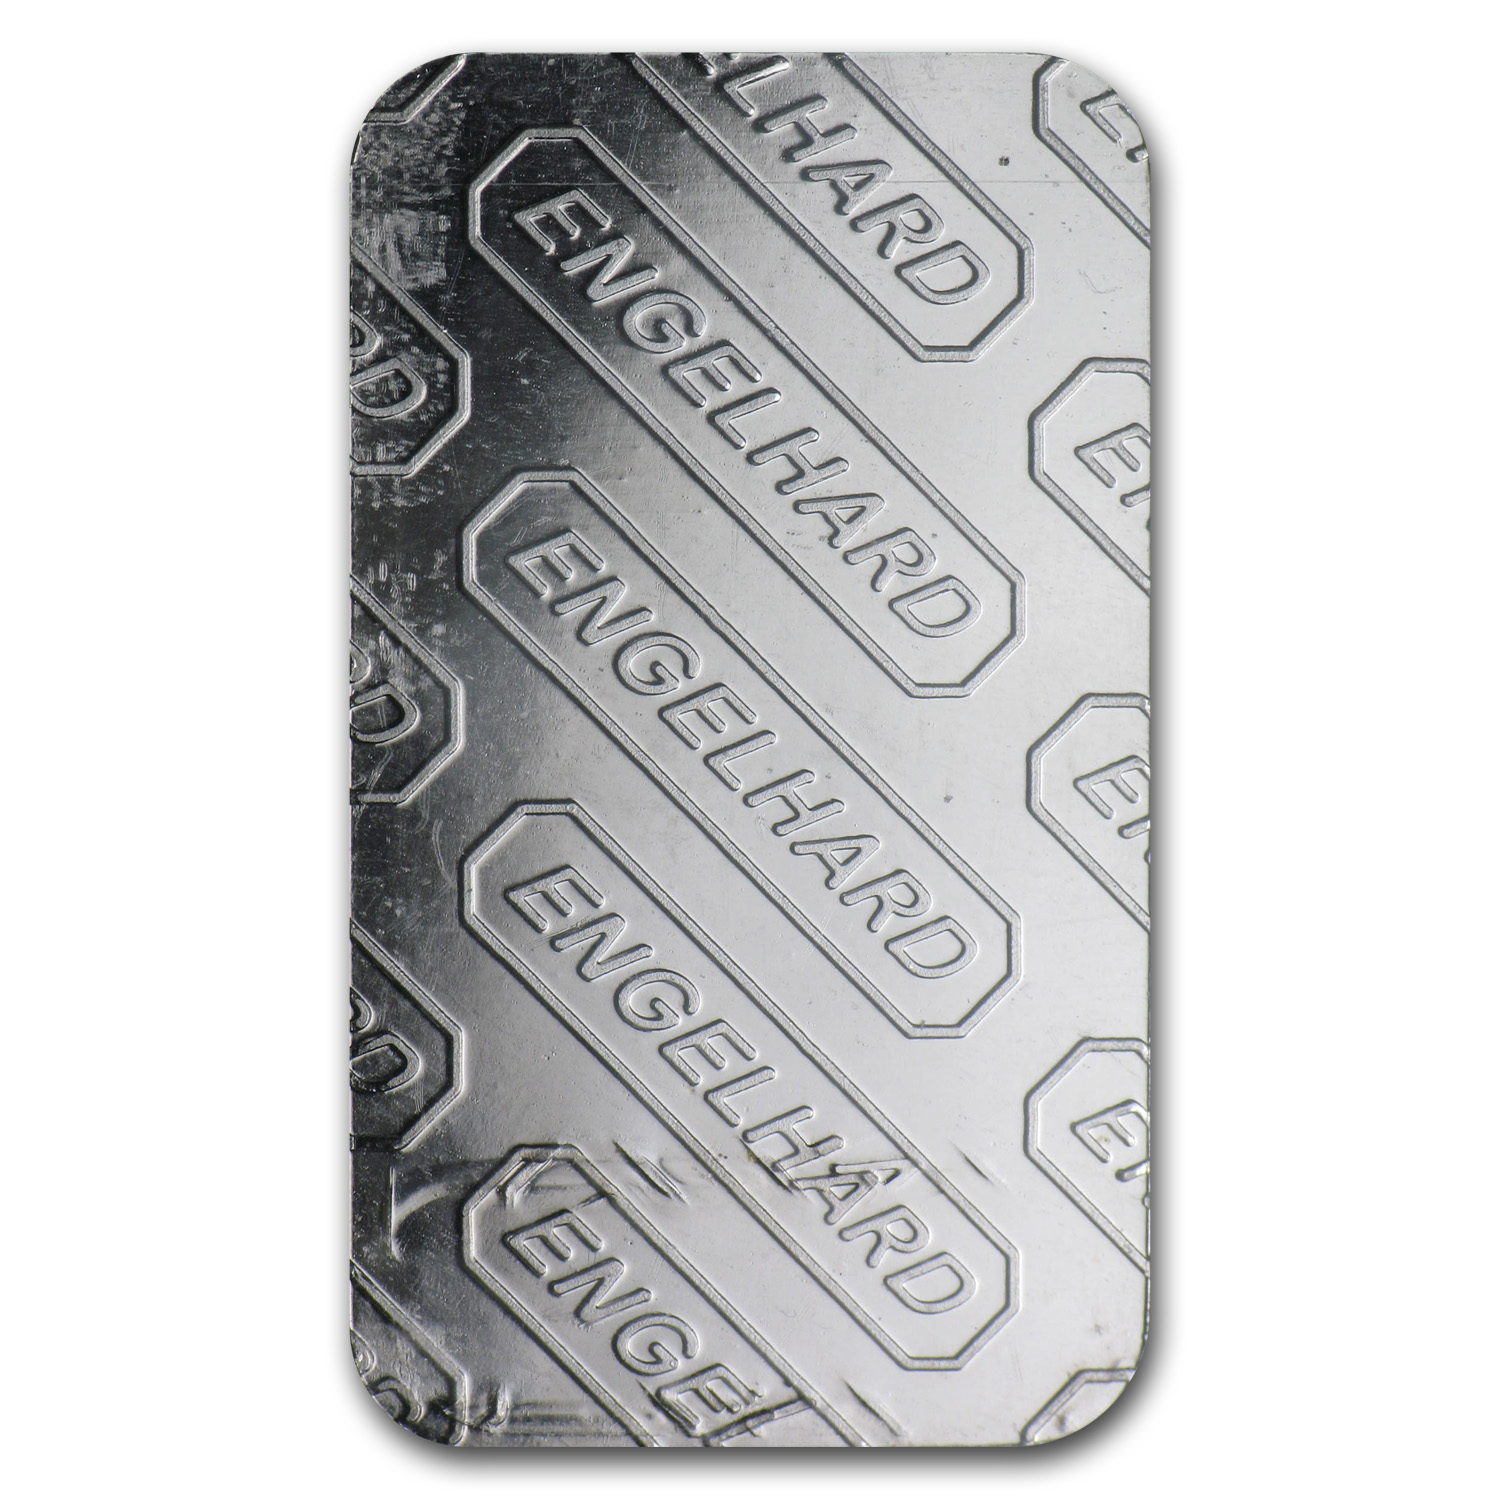 1/2 oz Engelhard Platinum Bar .9995 Fine (In Assay)